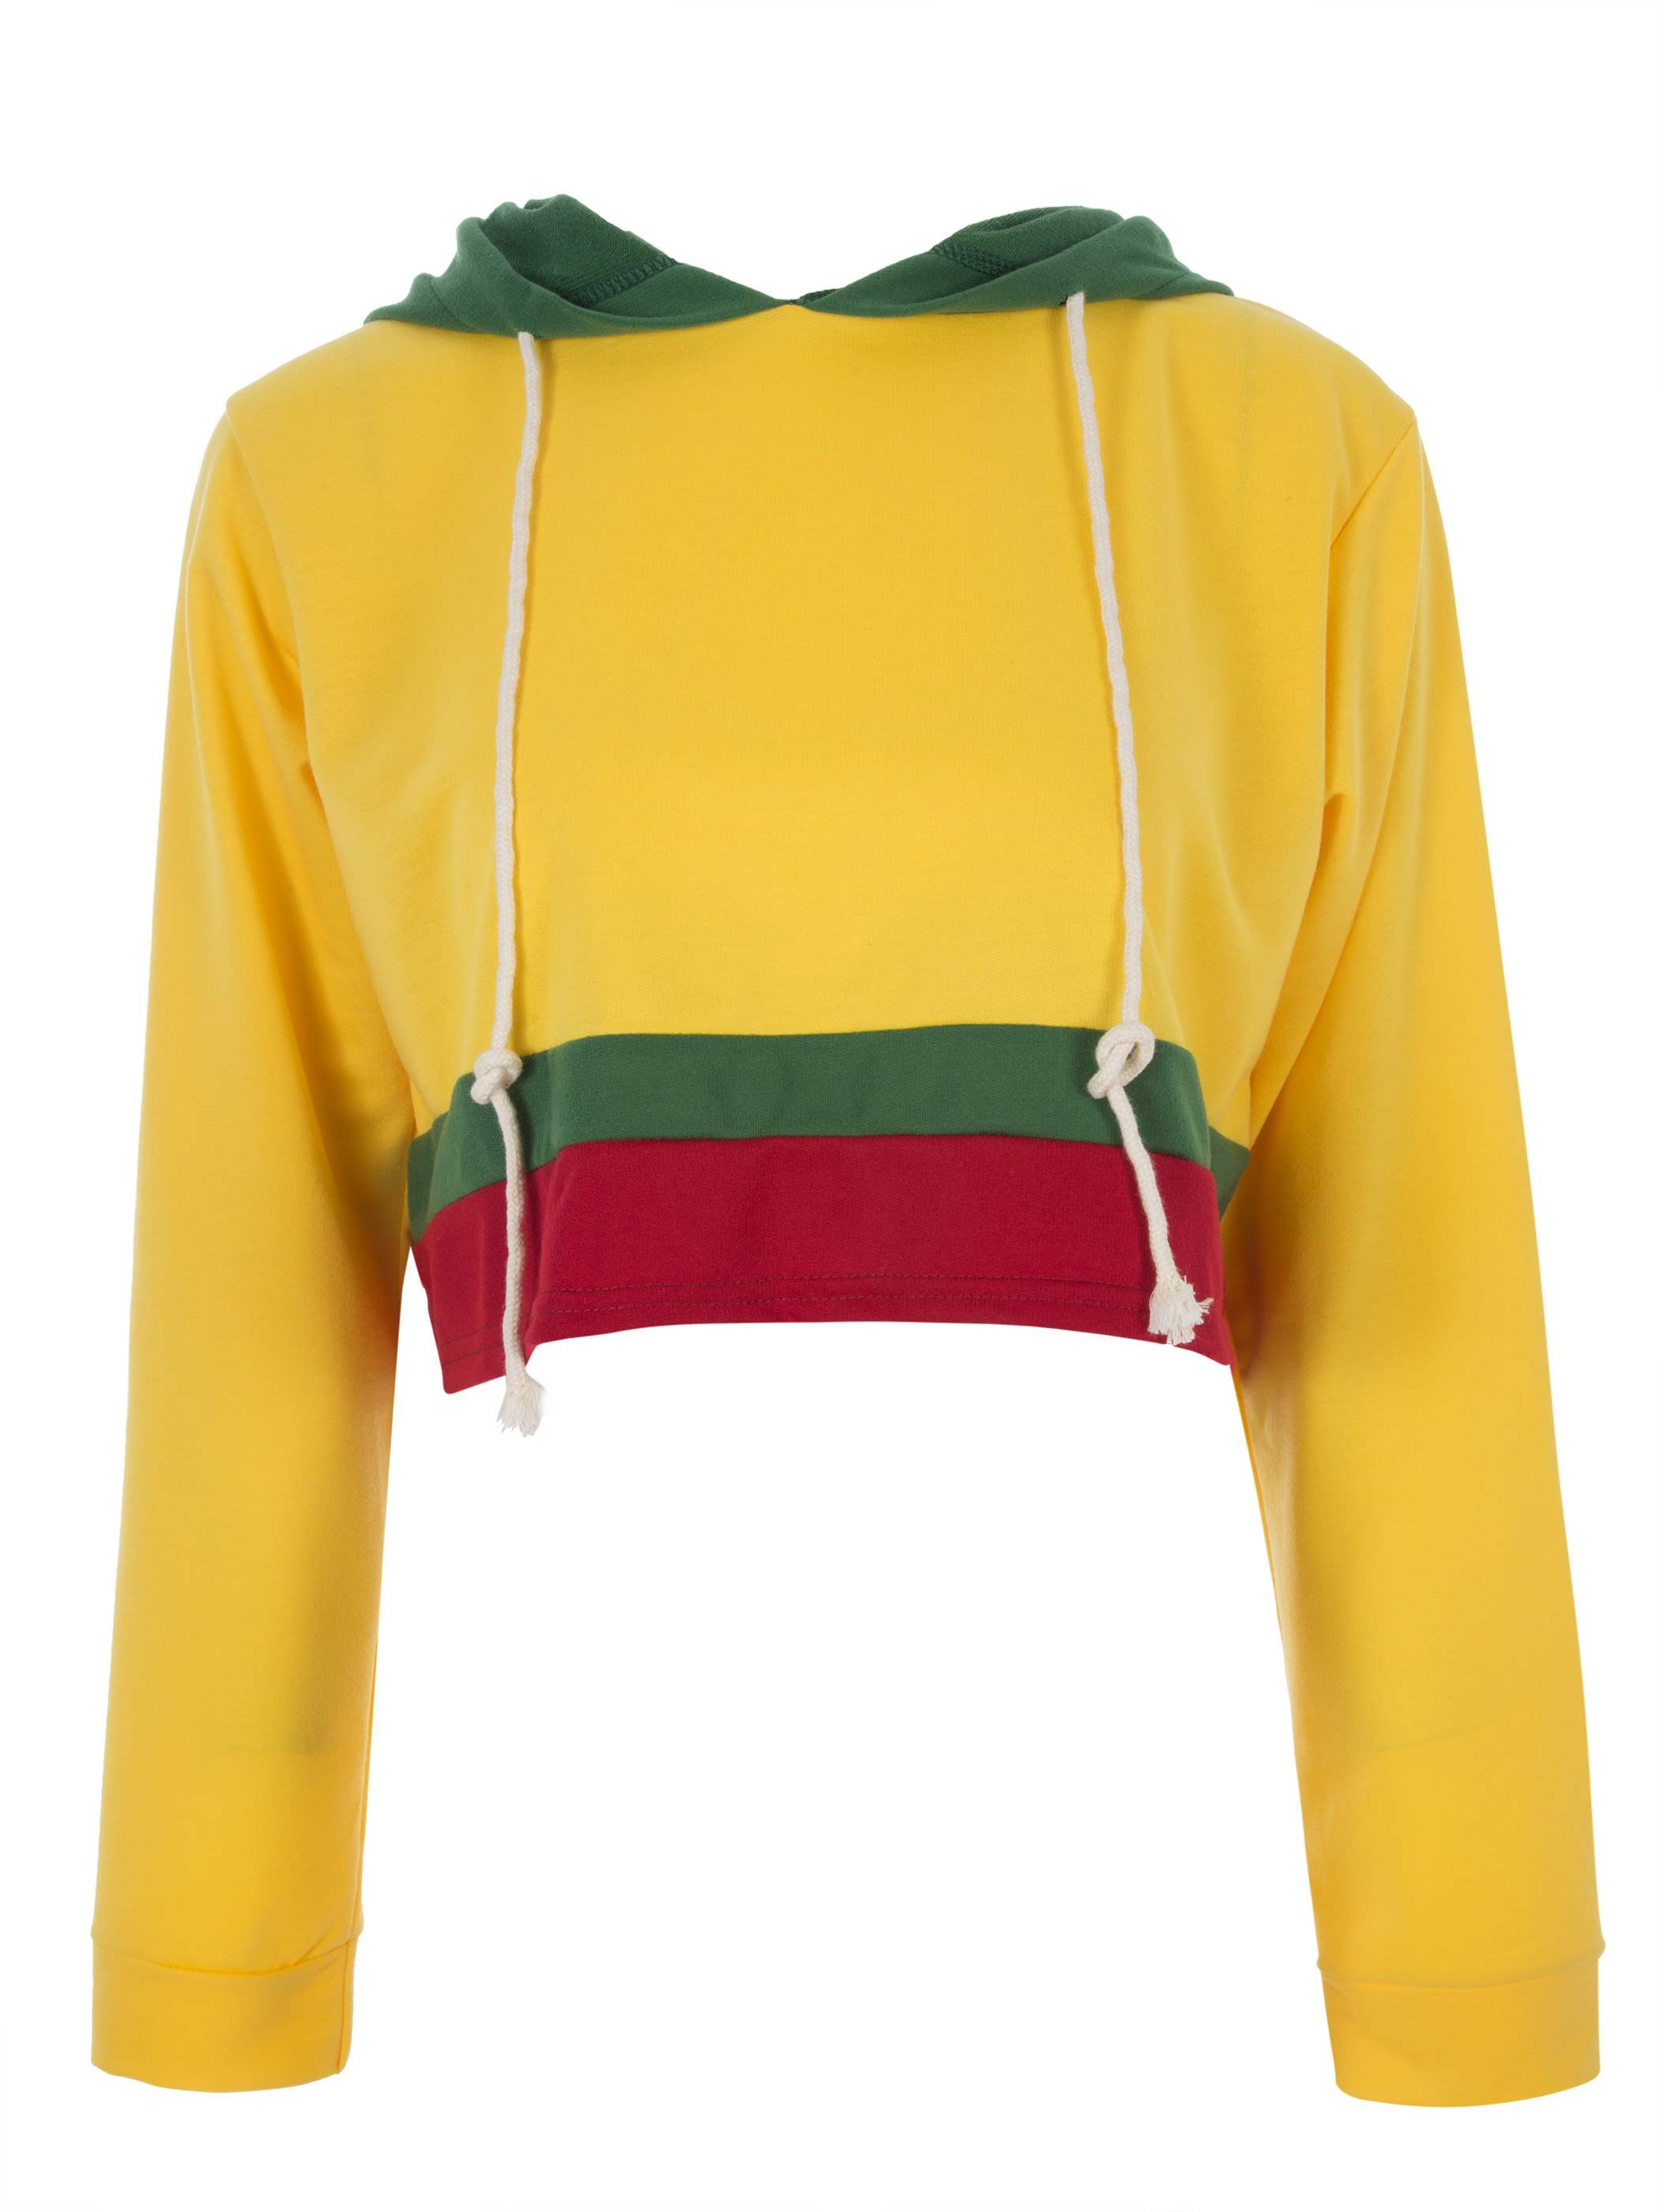 Ericdress Drawstring Color Block Pullover Crop Top Cool Hoodie